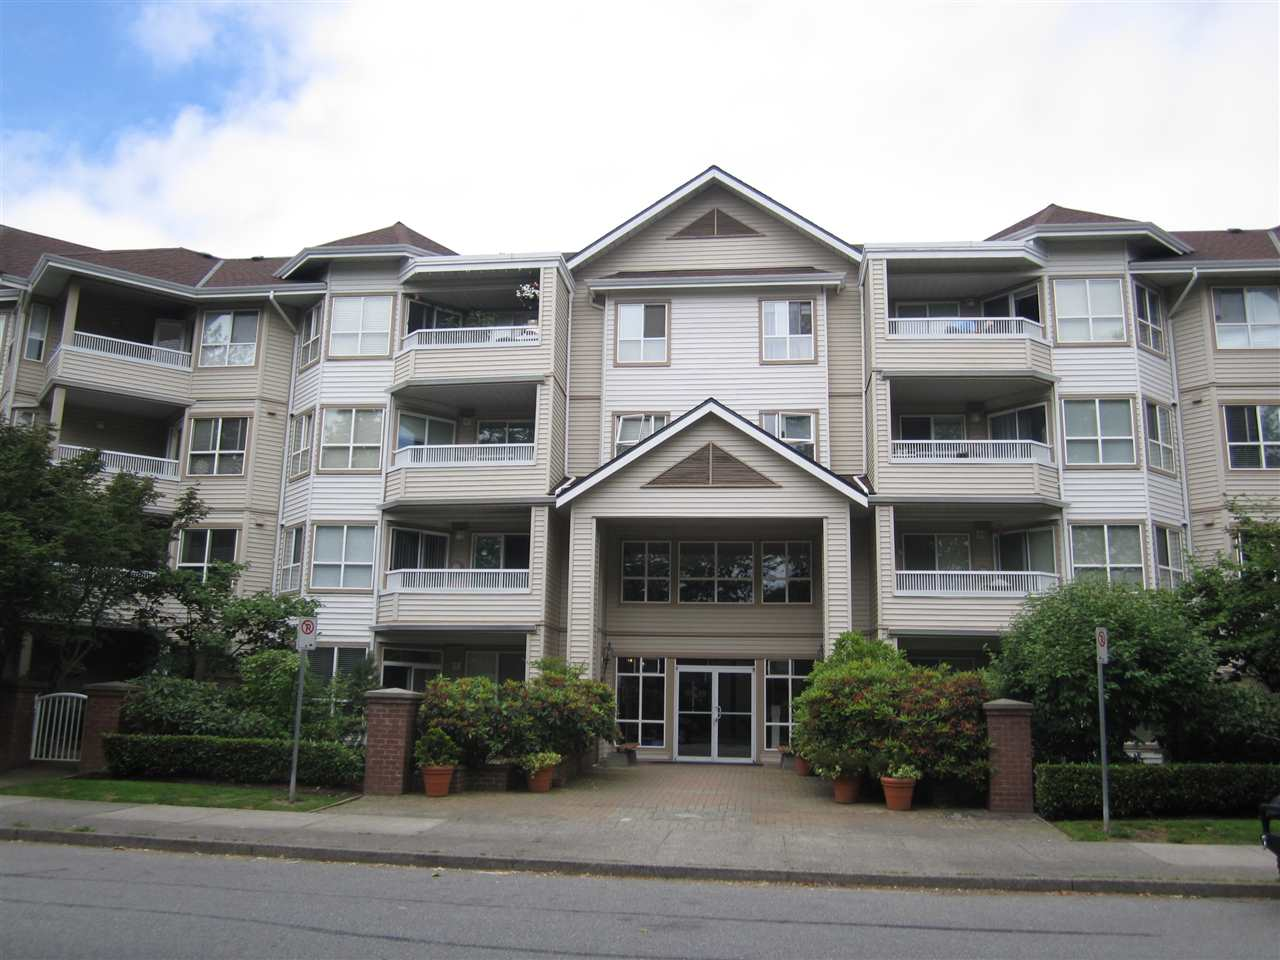 Condo Apartment at 313 8139 121A STREET, Unit 313, Surrey, British Columbia. Image 1